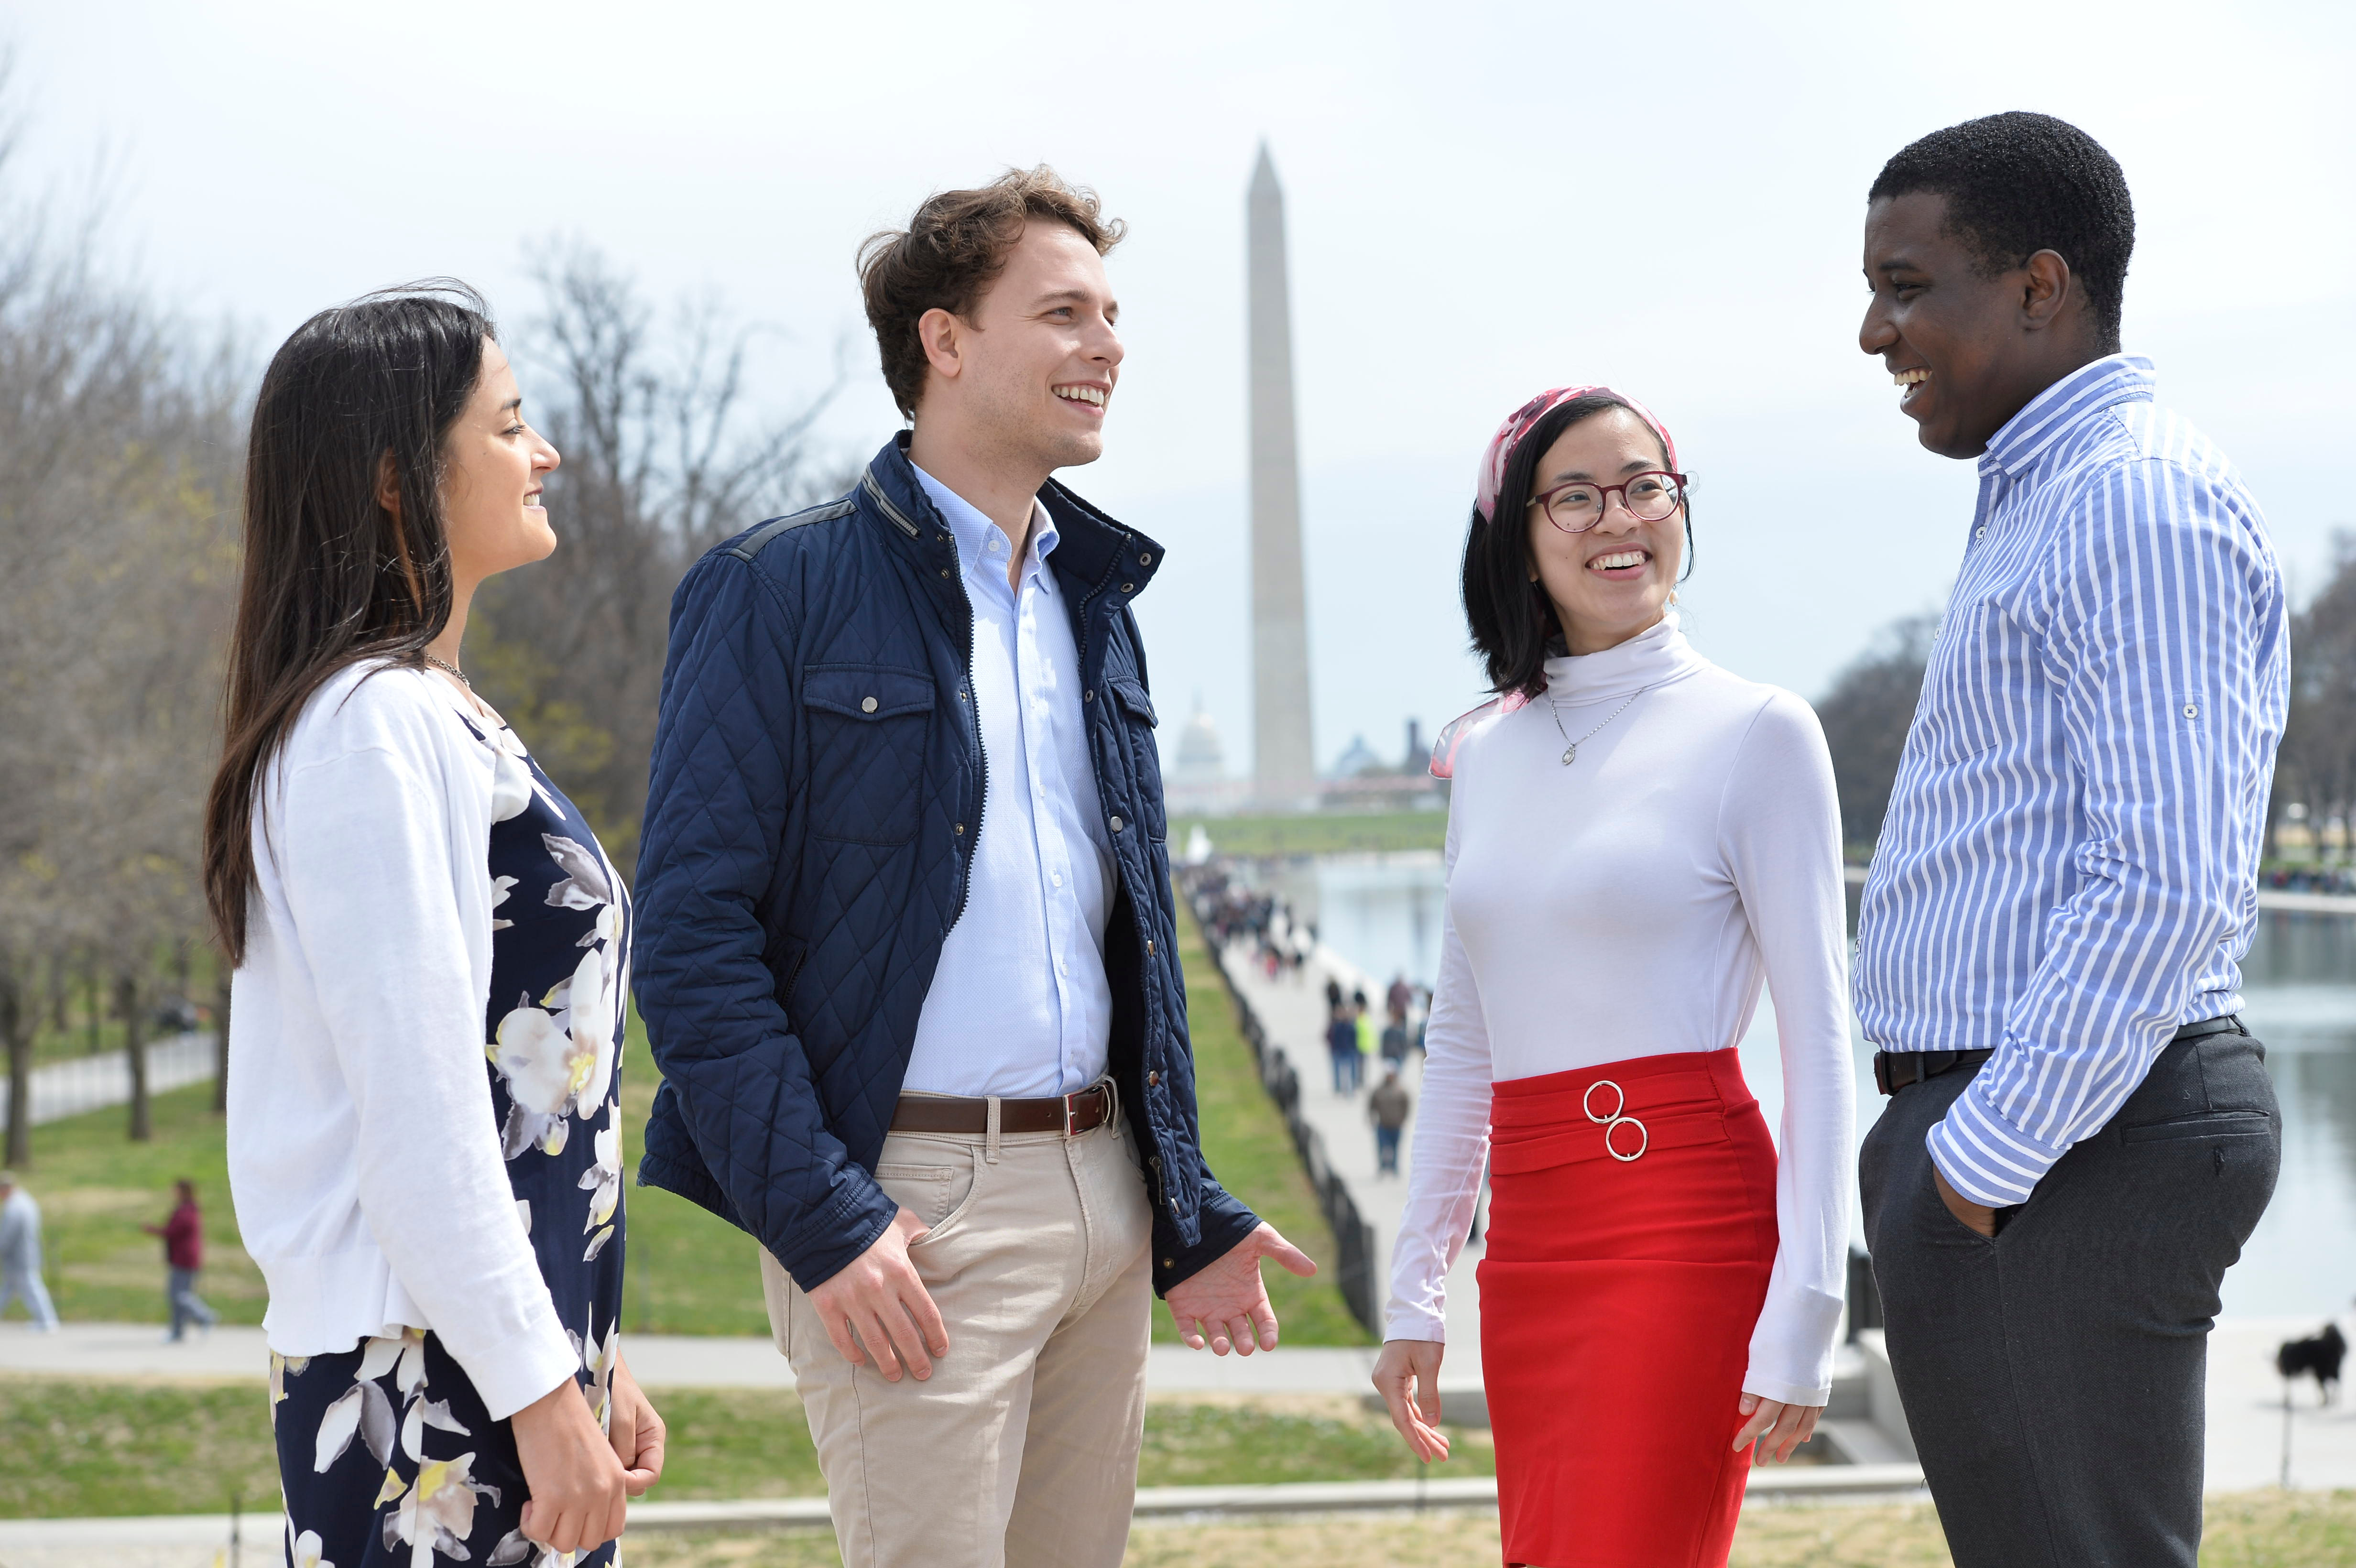 SAIS Students at the reflecting pool